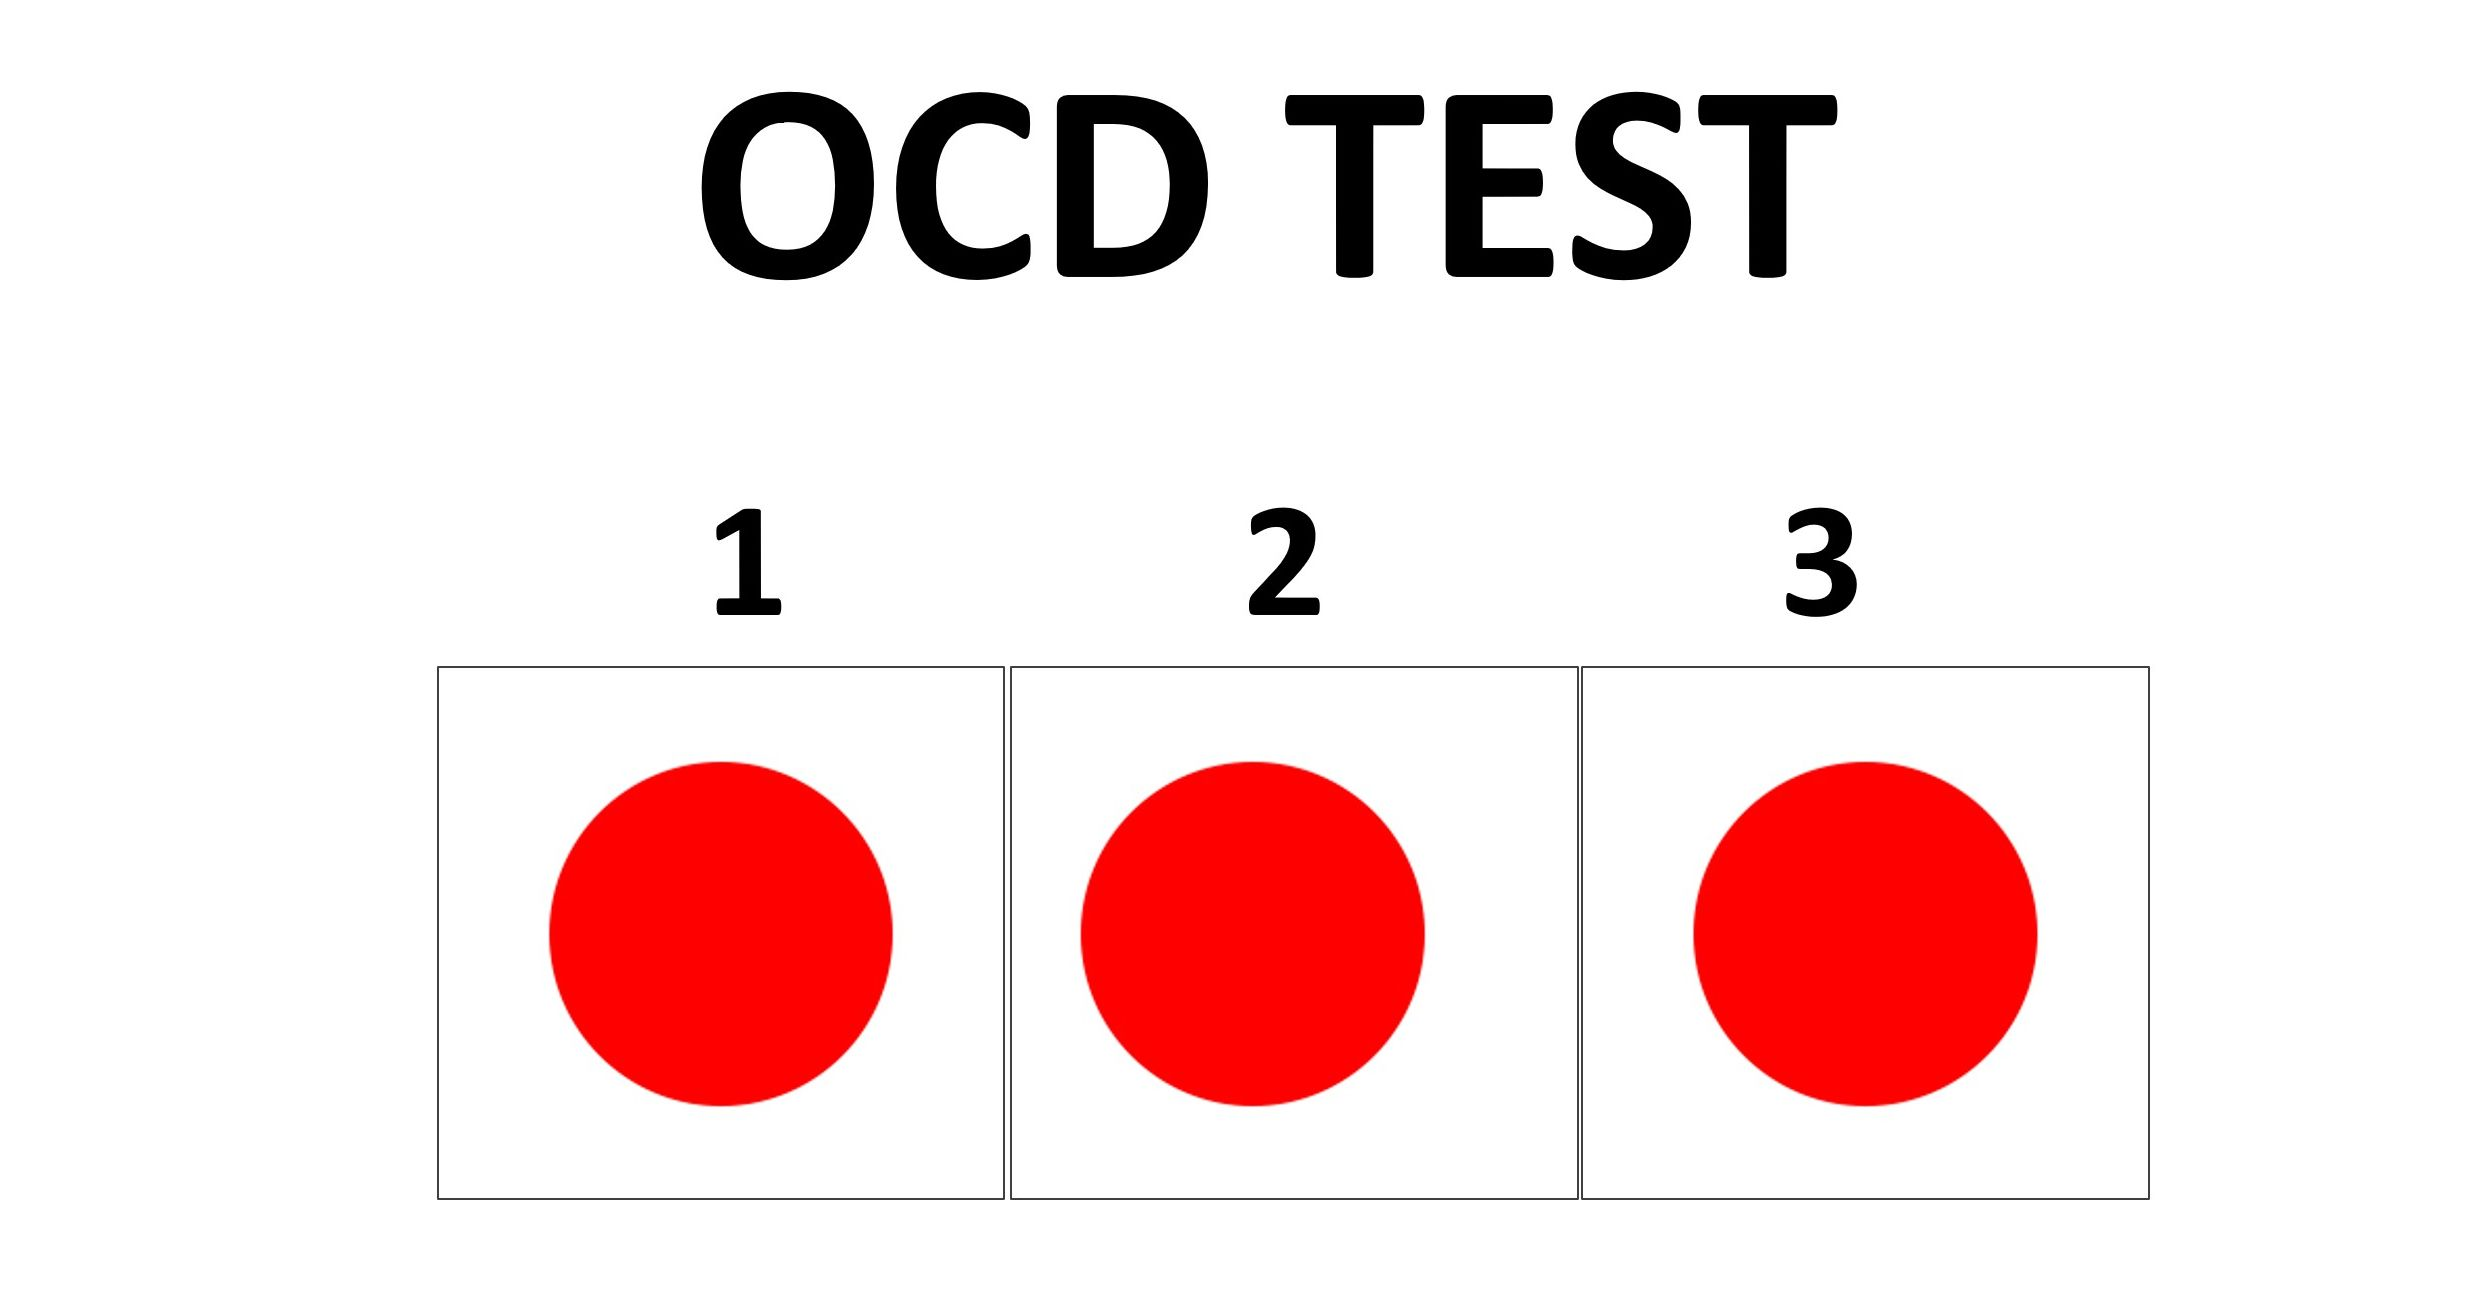 what level sensitivity is your ocd radar? take the quiz below and